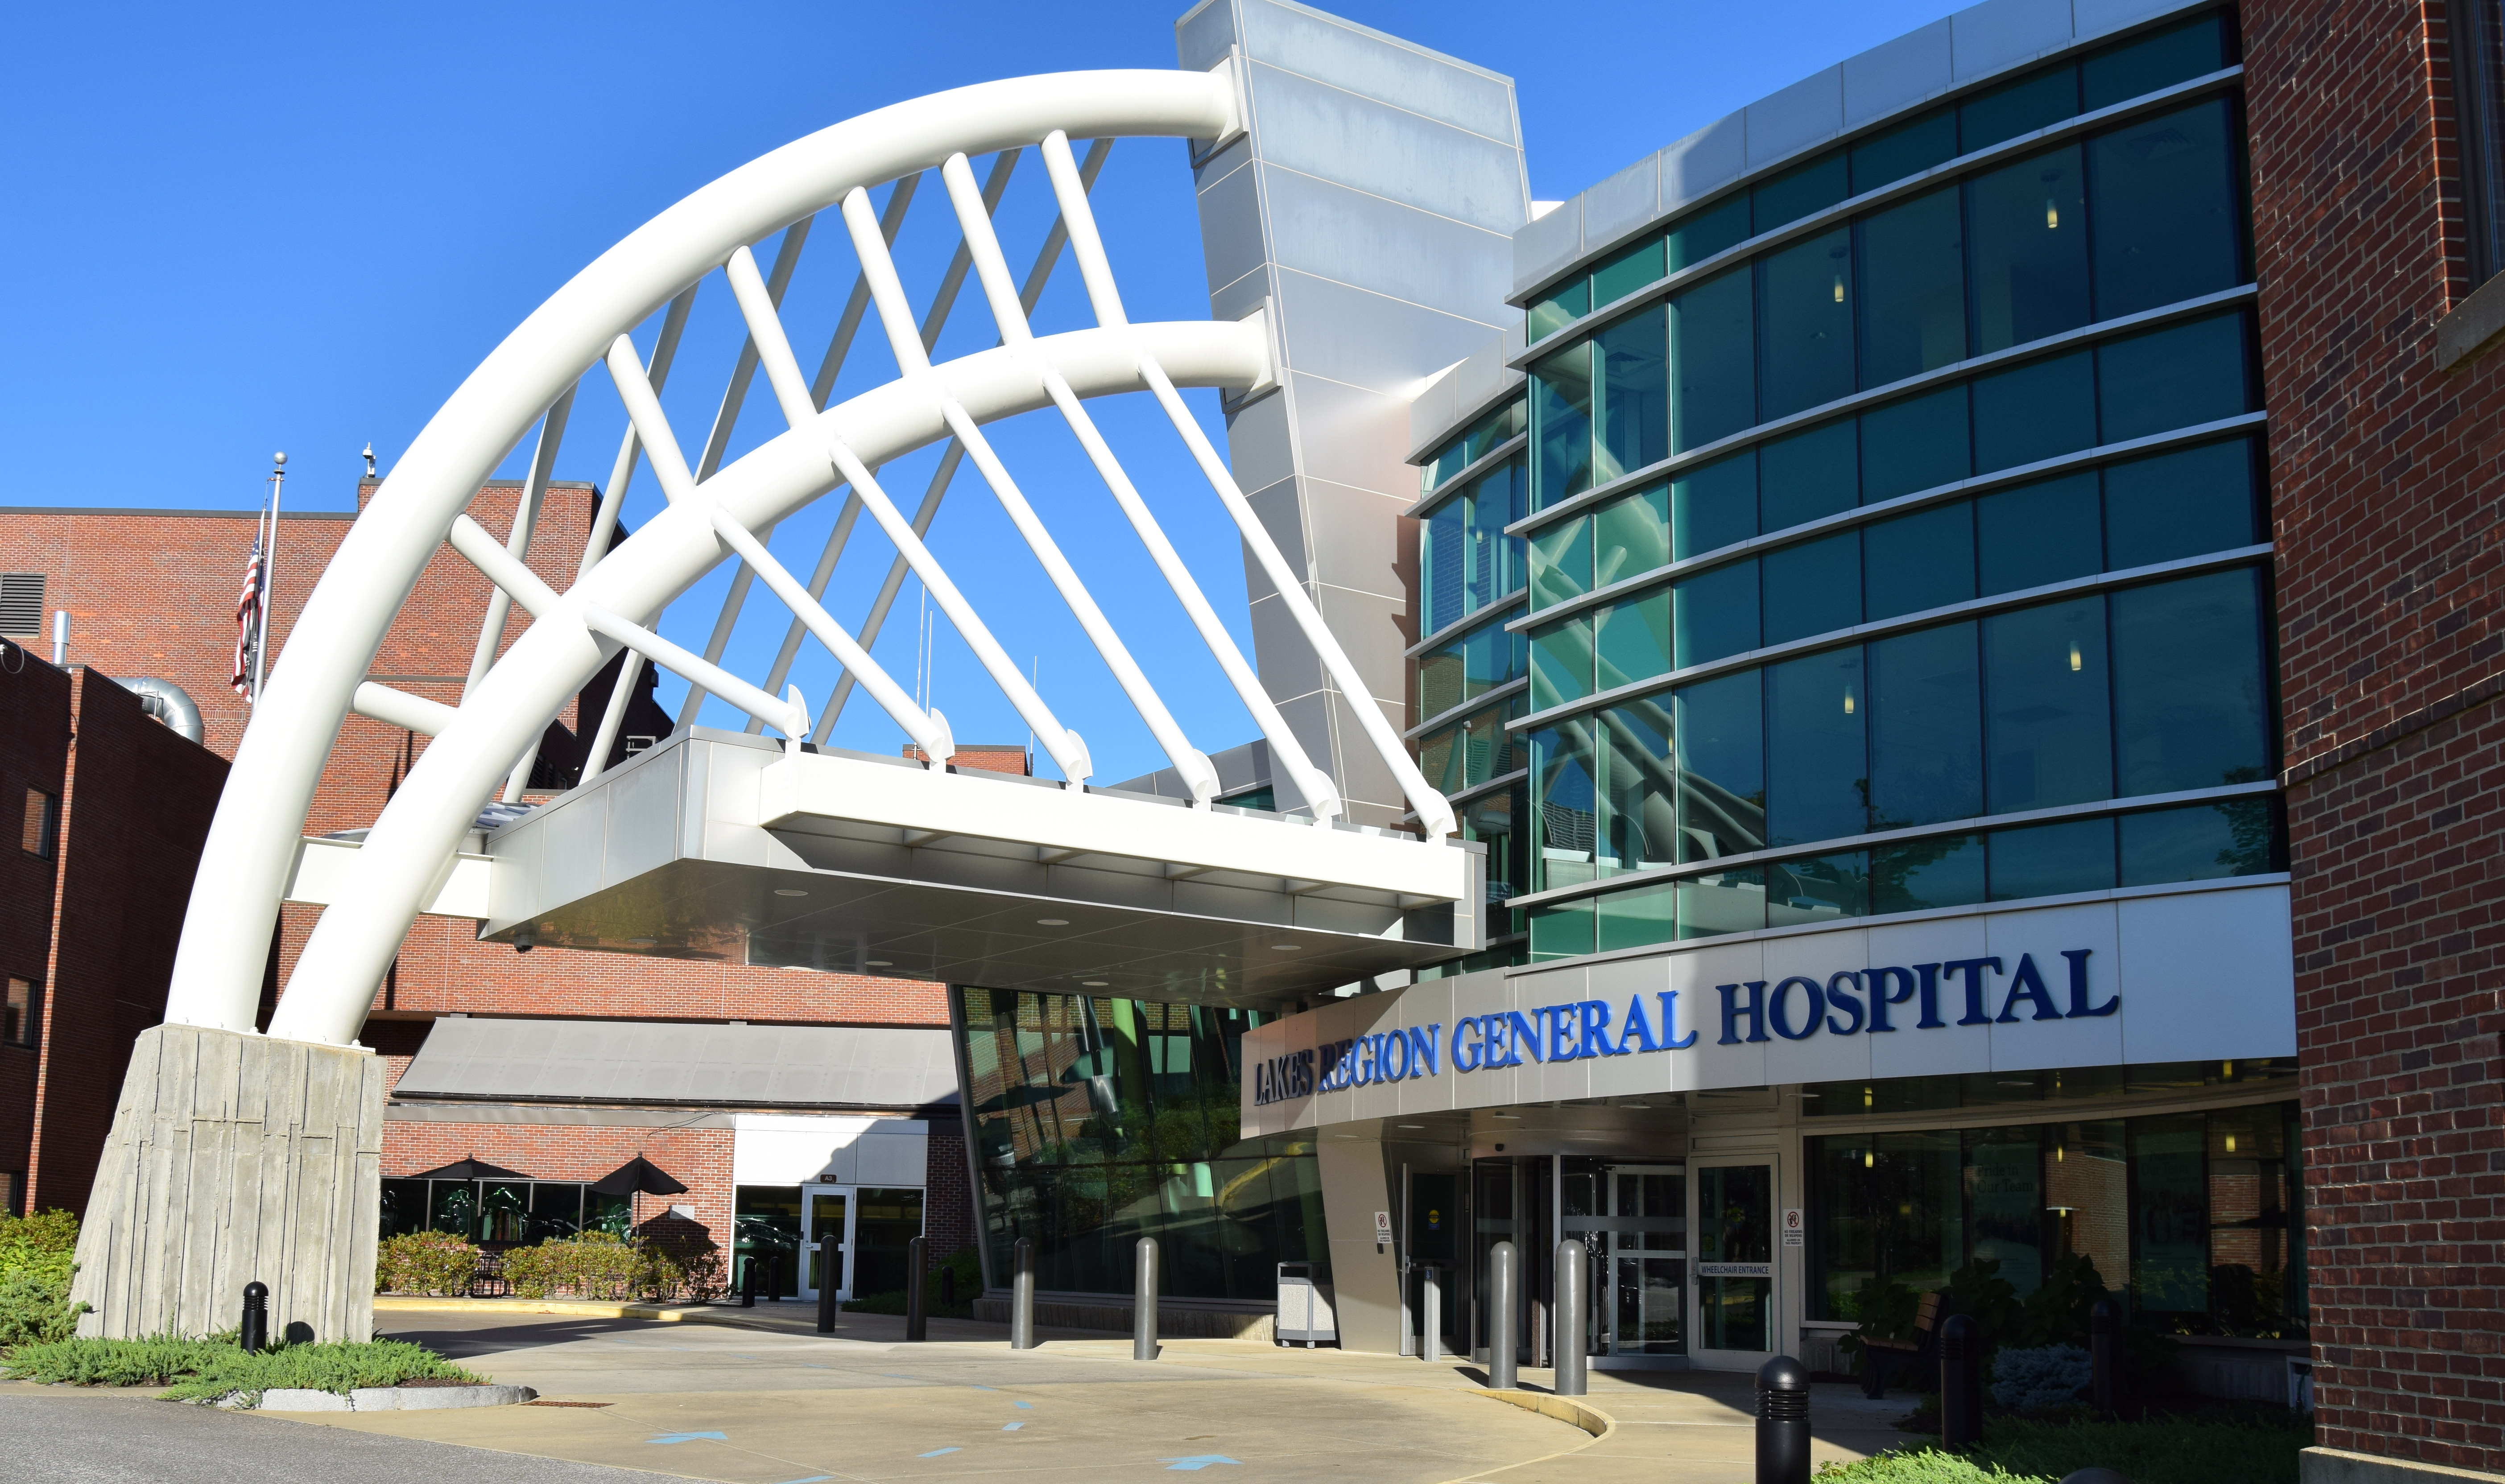 House passes $2 trillion stimulus package: What now for hospitals?